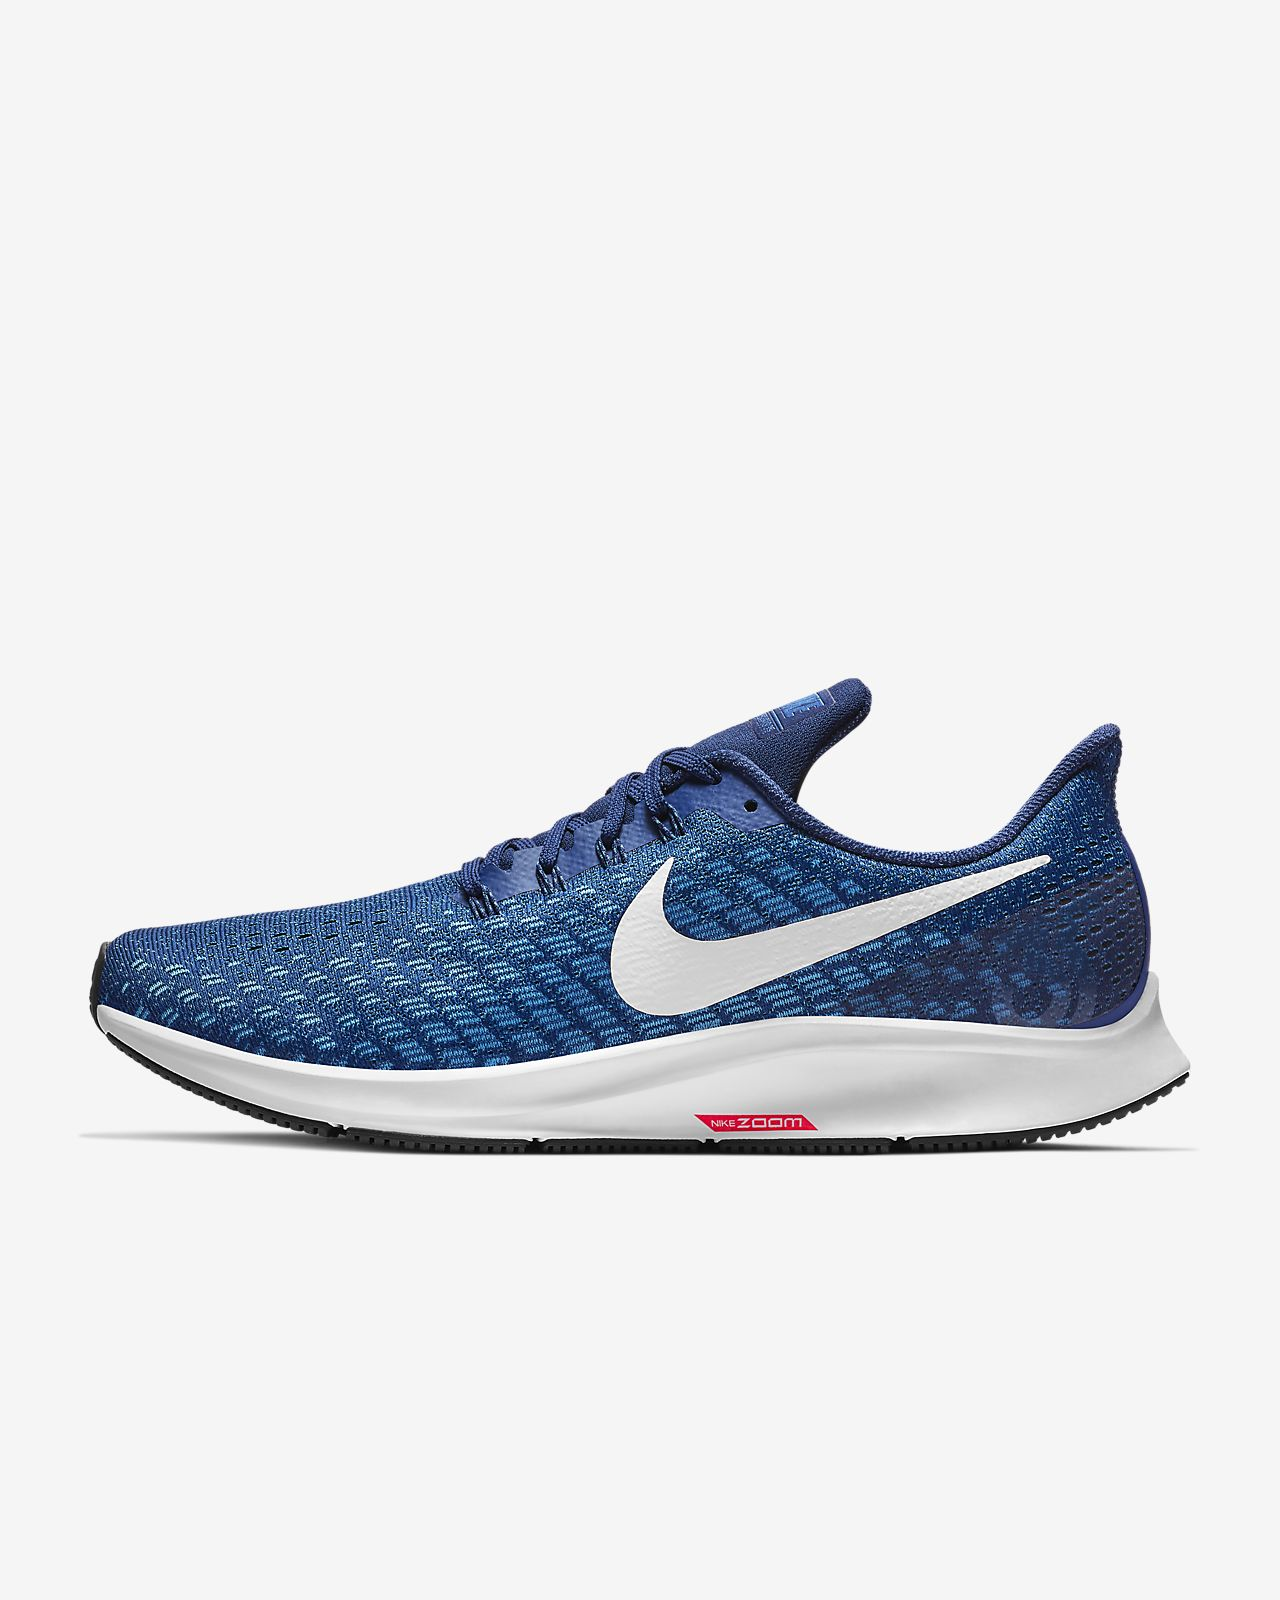 b71cbb4fa1d0 Nike Air Zoom Pegasus 35 Men s Running Shoe. Nike.com AU